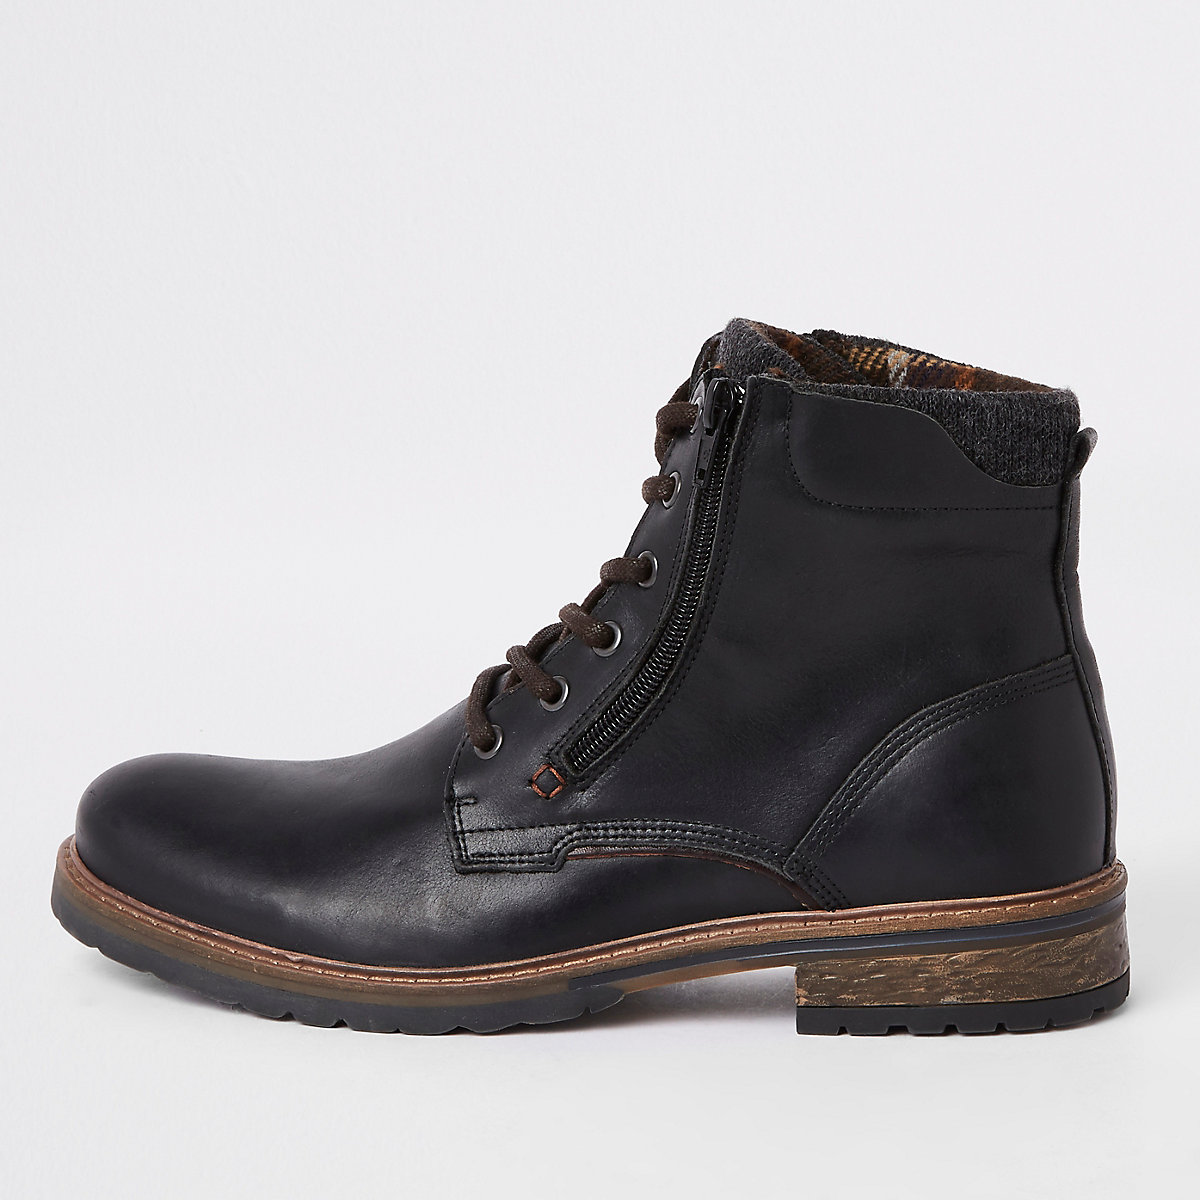 Black leather zip side lace-up boots